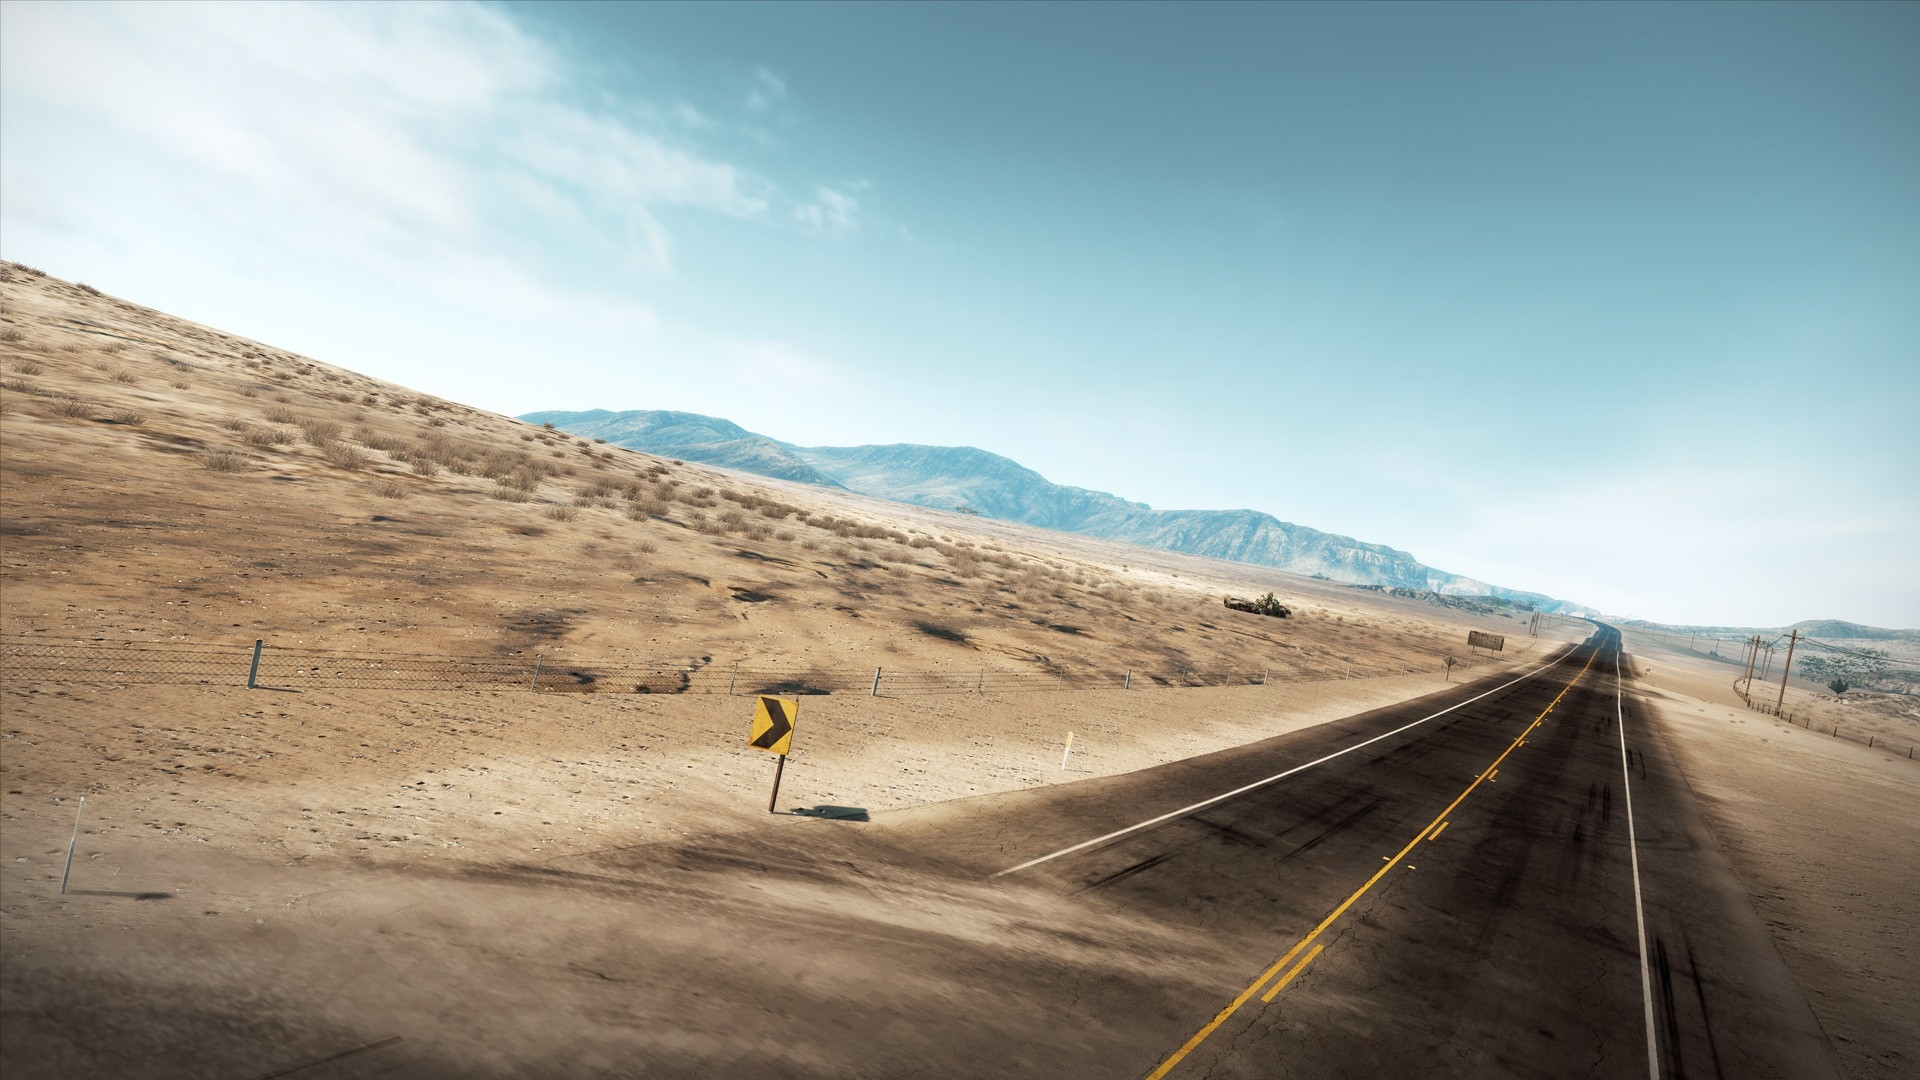 desert_cgi_highway_roads_digital_art_1920x1080_wallpaper_Wallpaper_1920x1080_www.wallpaperhi.com.jpg